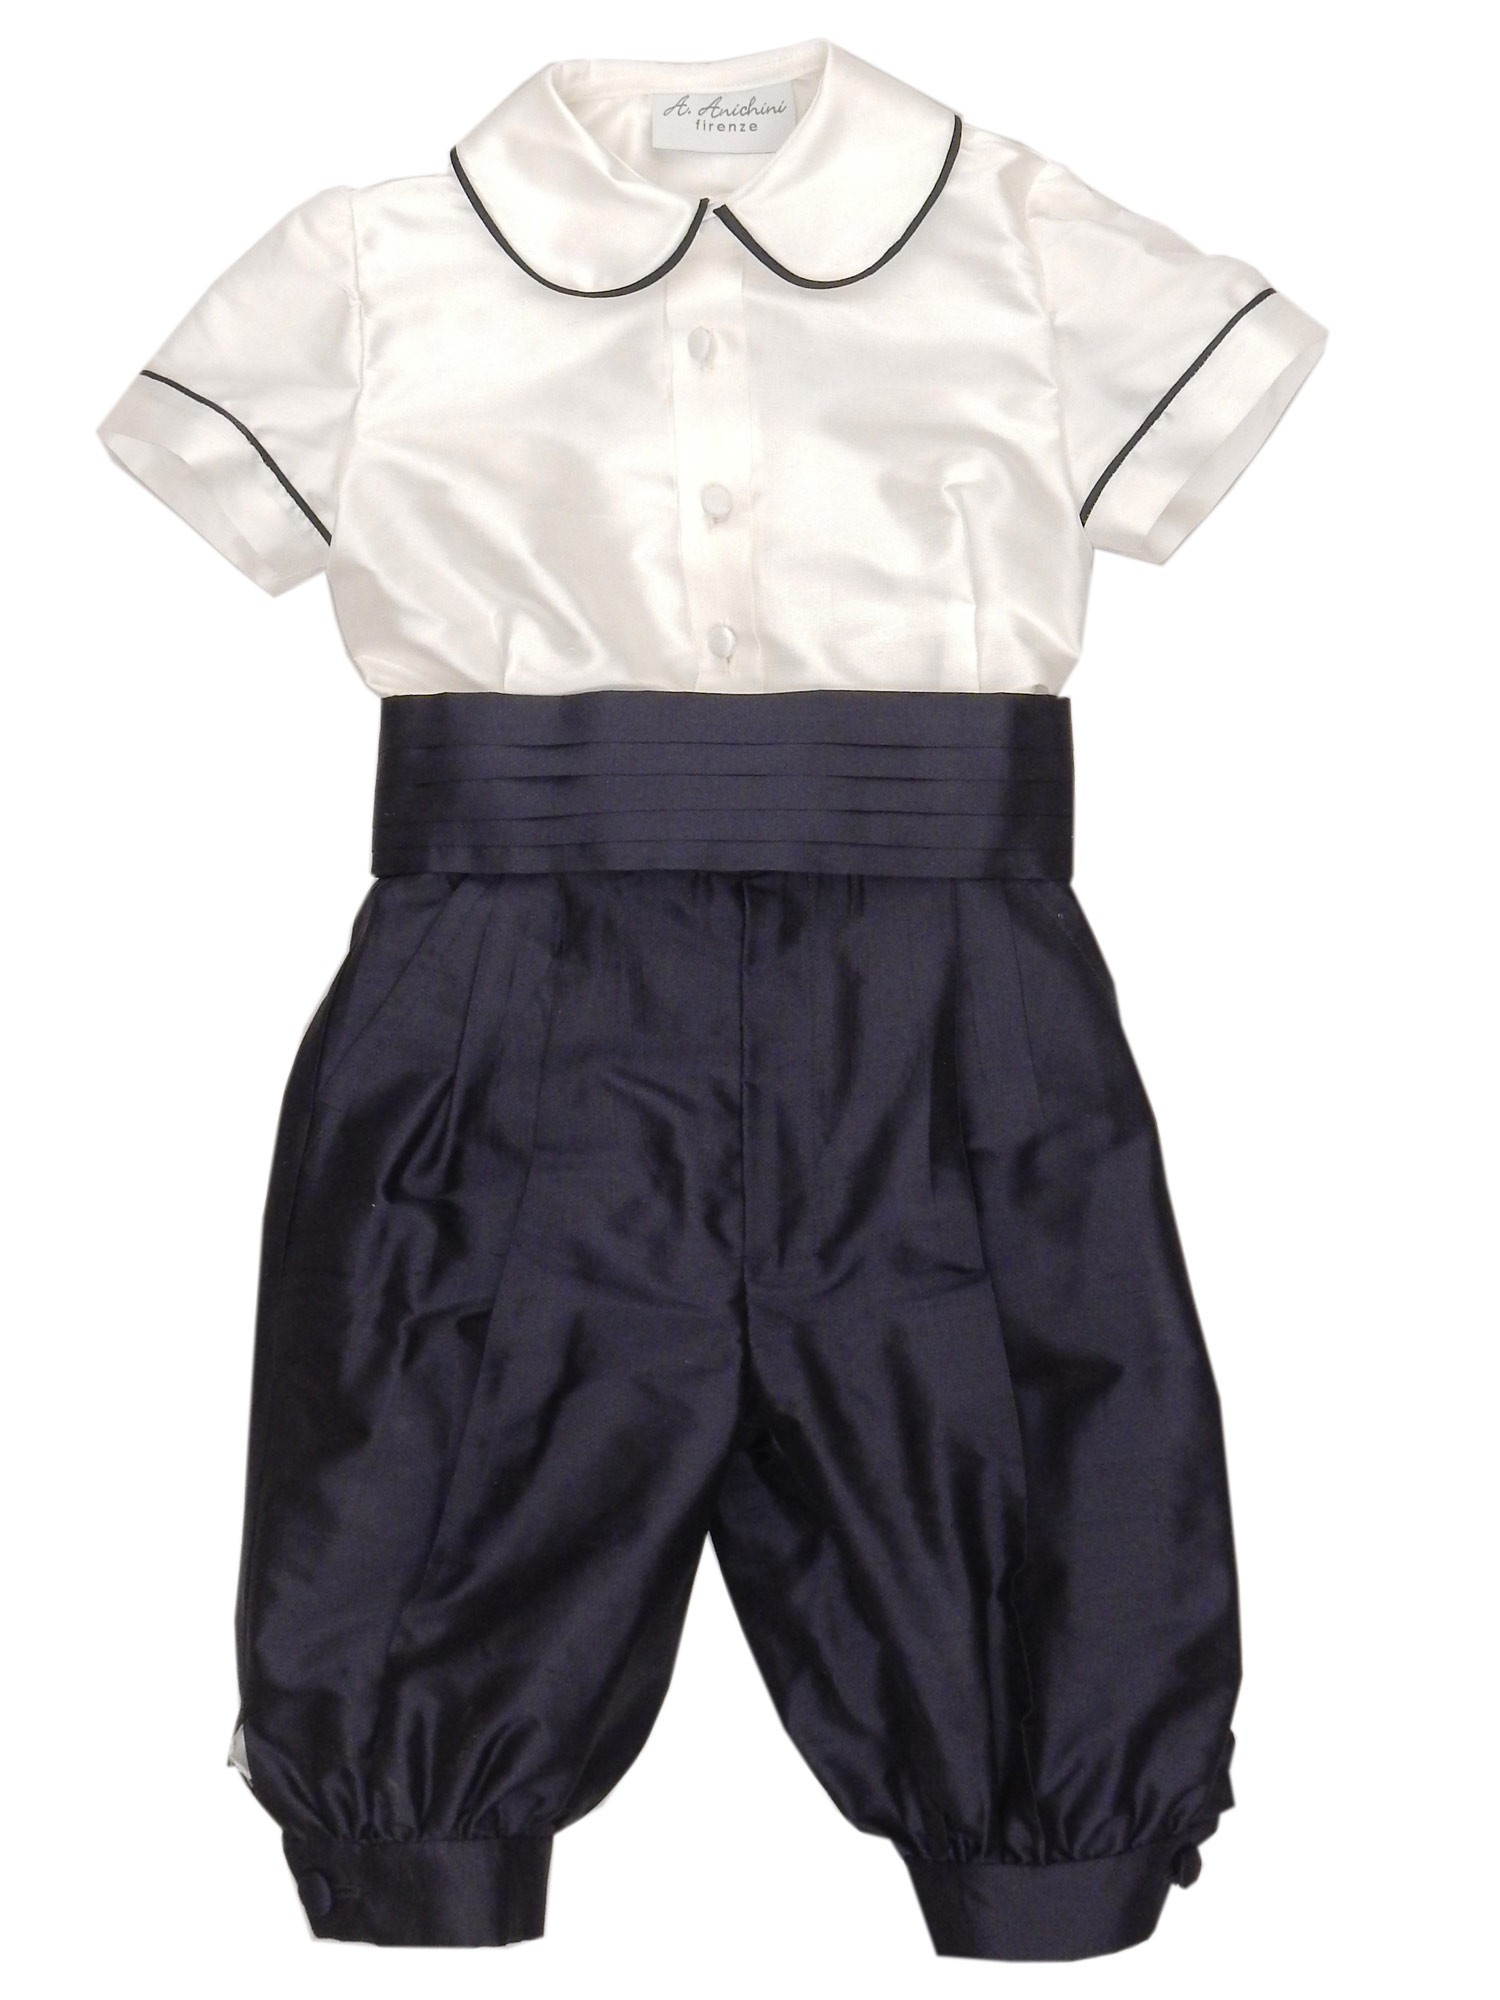 Enea boy special occasion outfit